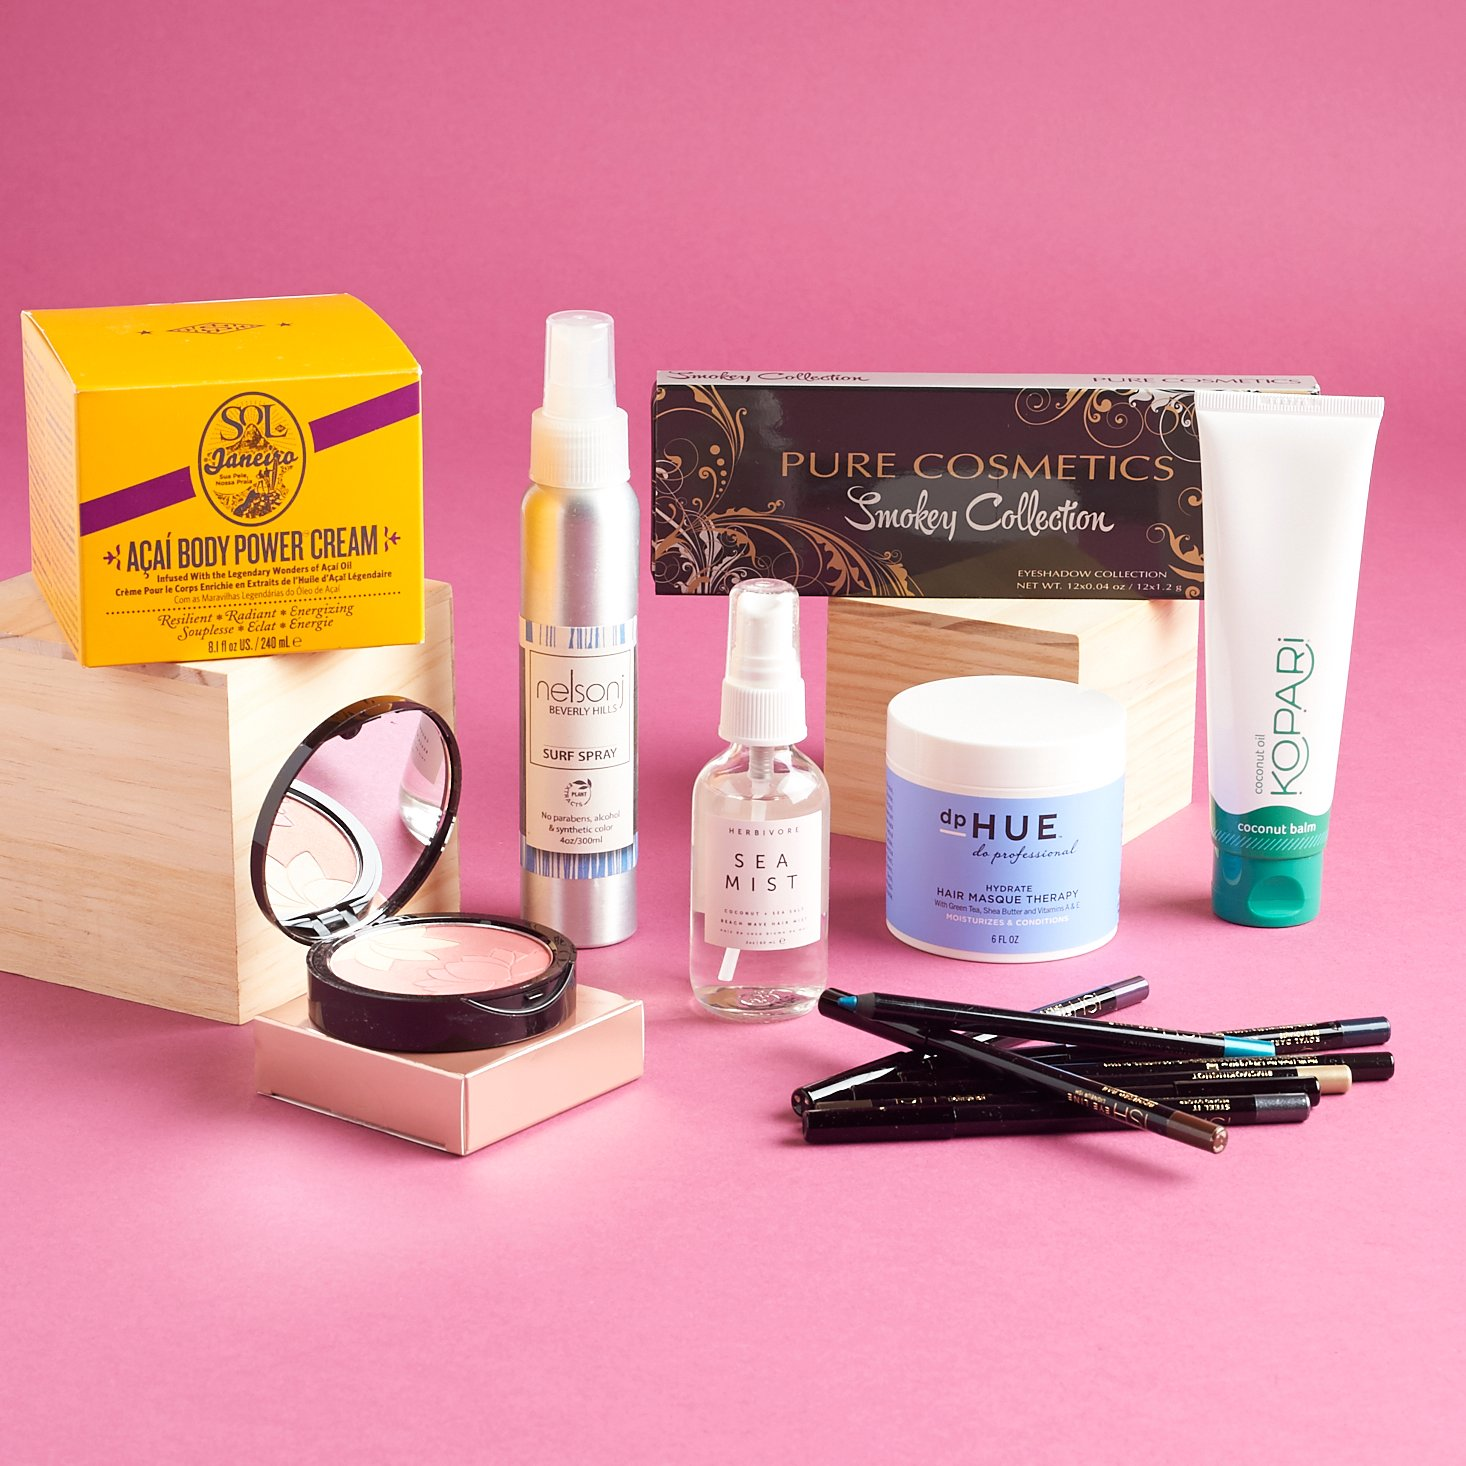 Get a personalized monthly box of makeup, haircare, and skincare samples delivered right to your door. Then buy what you try. It's the best way to find products you'll love.